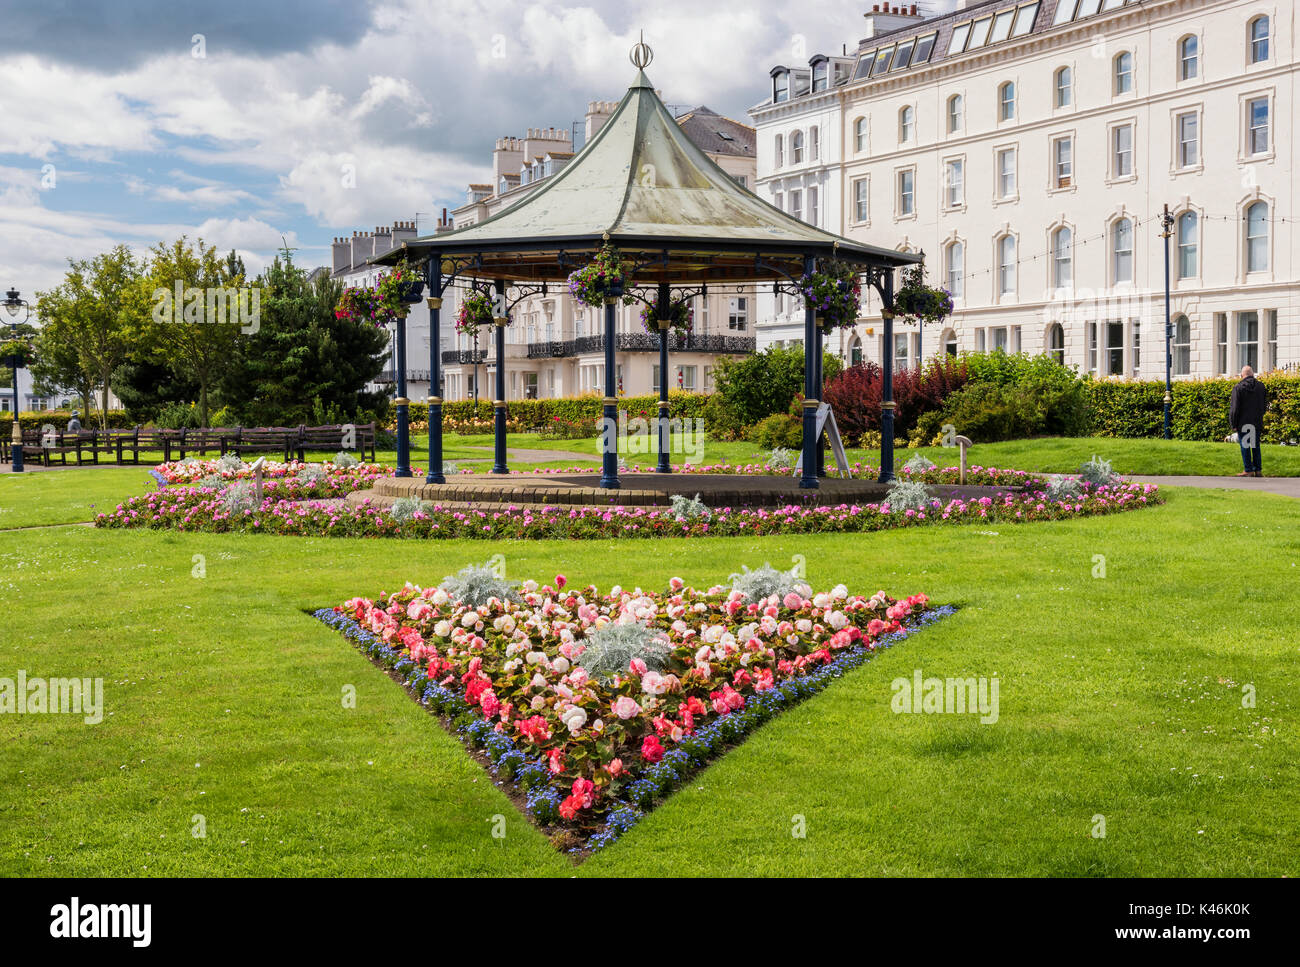 Flowers in the Cresent gardens at Filey - Stock Image